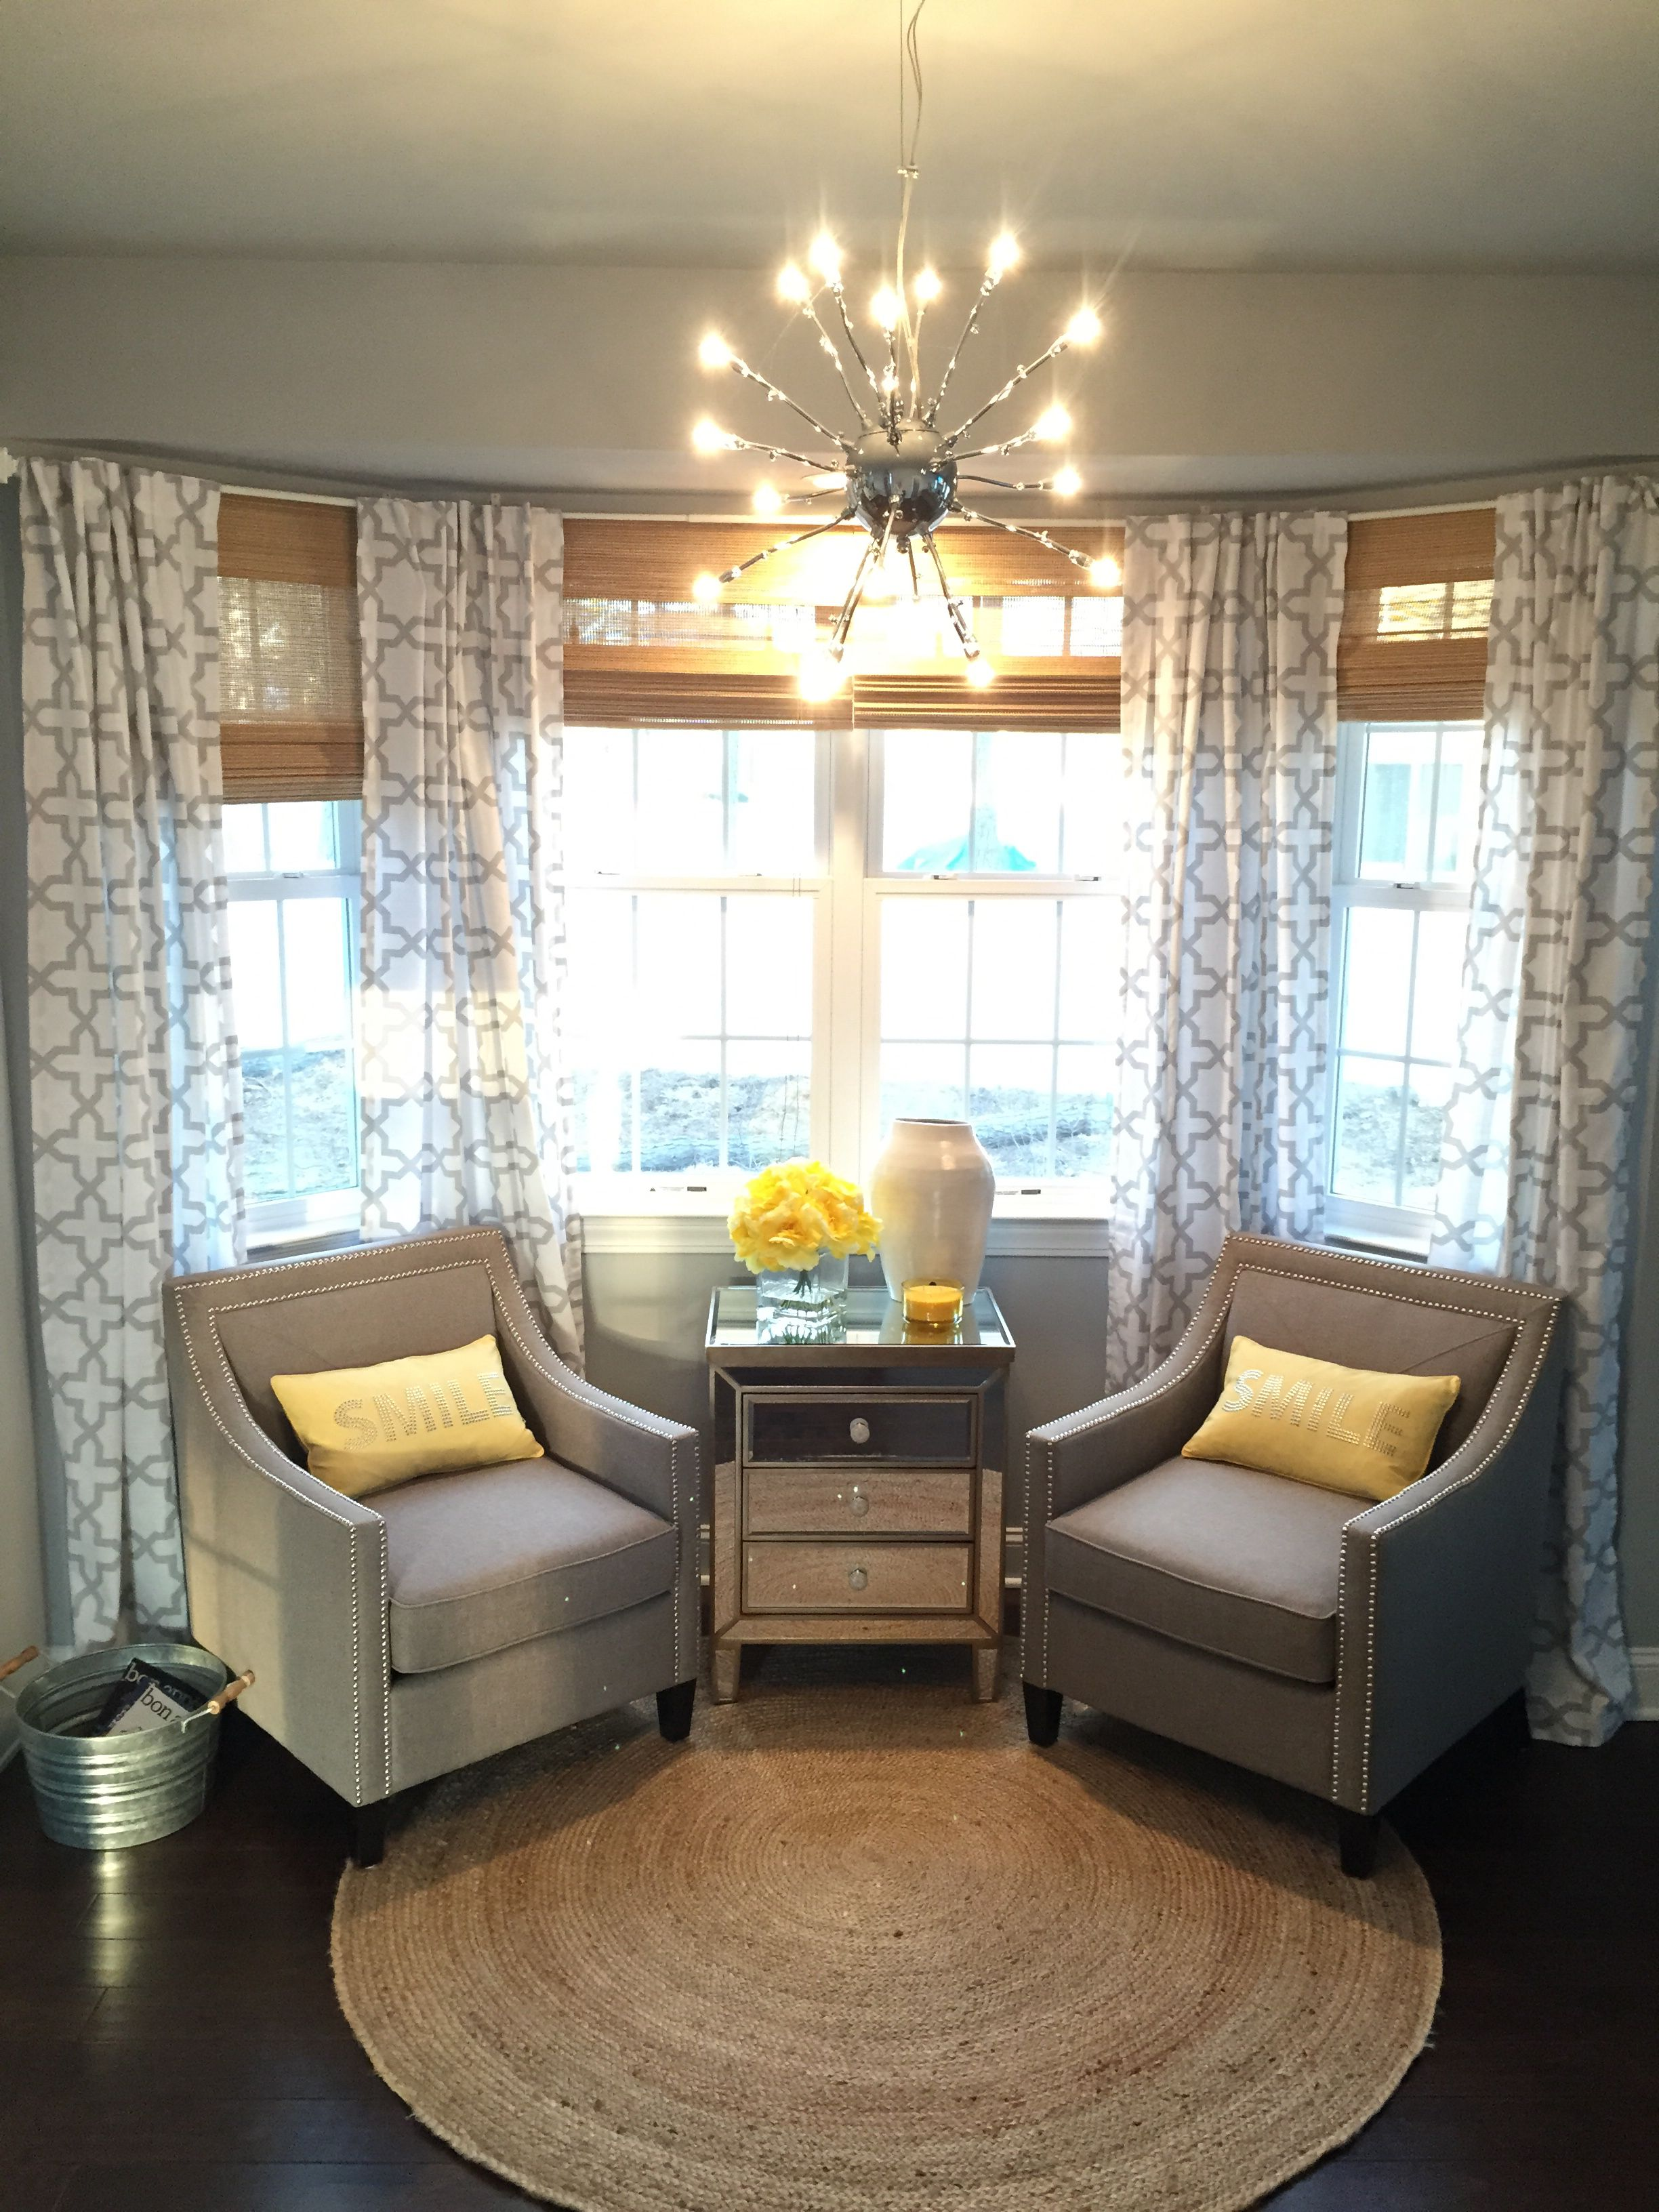 This Is One Of My Favorite Spots In Home Bay Window With Two Beautiful Neutral Taupe Linen Chairs Chrome Nail Head Detailing